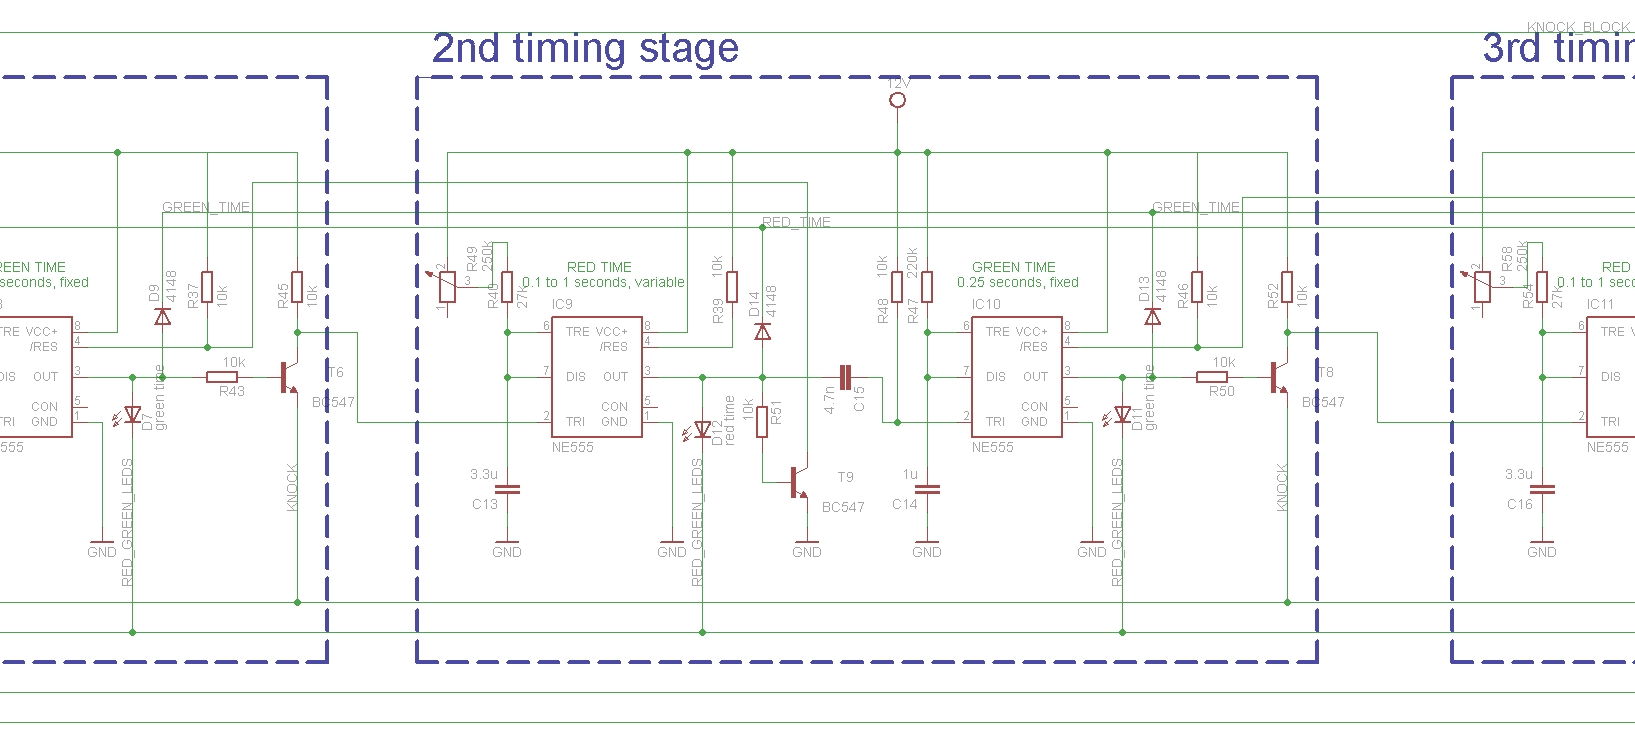 Secret Knock Detector With 555 Electro Bob Door Open Alarm Using Timer Circuit There Are 7 Timing Stages Which Meant To Detect If The Pulses Arrive At Correct Timings Measure Intervals And Along First Pulse